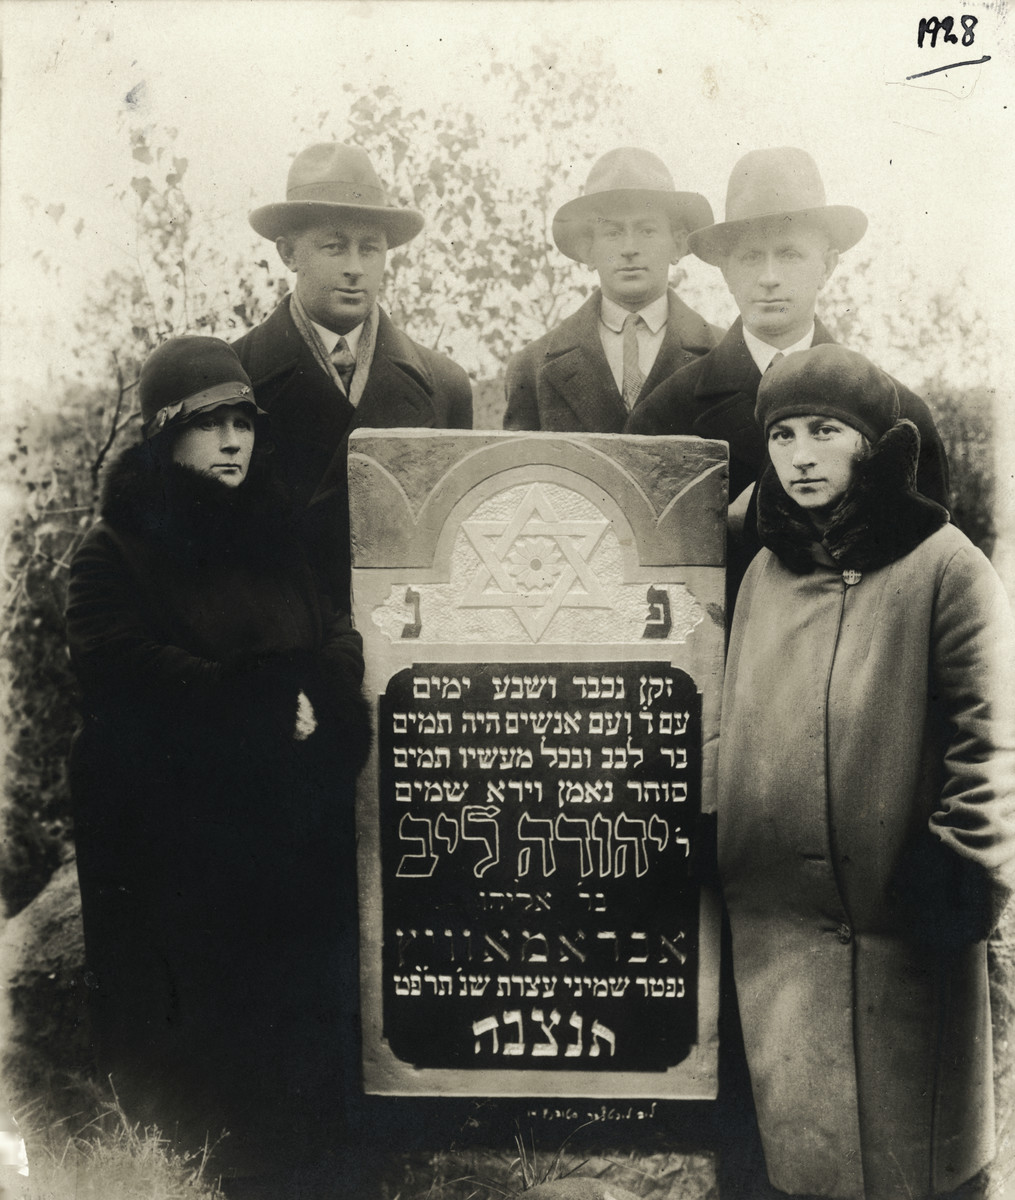 The Abramovitch family poses by the grave of their father, Yehuda Leib Abramovitch who died on the Jewish holiday Shemini Atzeret in 1928.  From left to right are Ziporah (Faygel), Simcha and Tsalke Abramovitch.